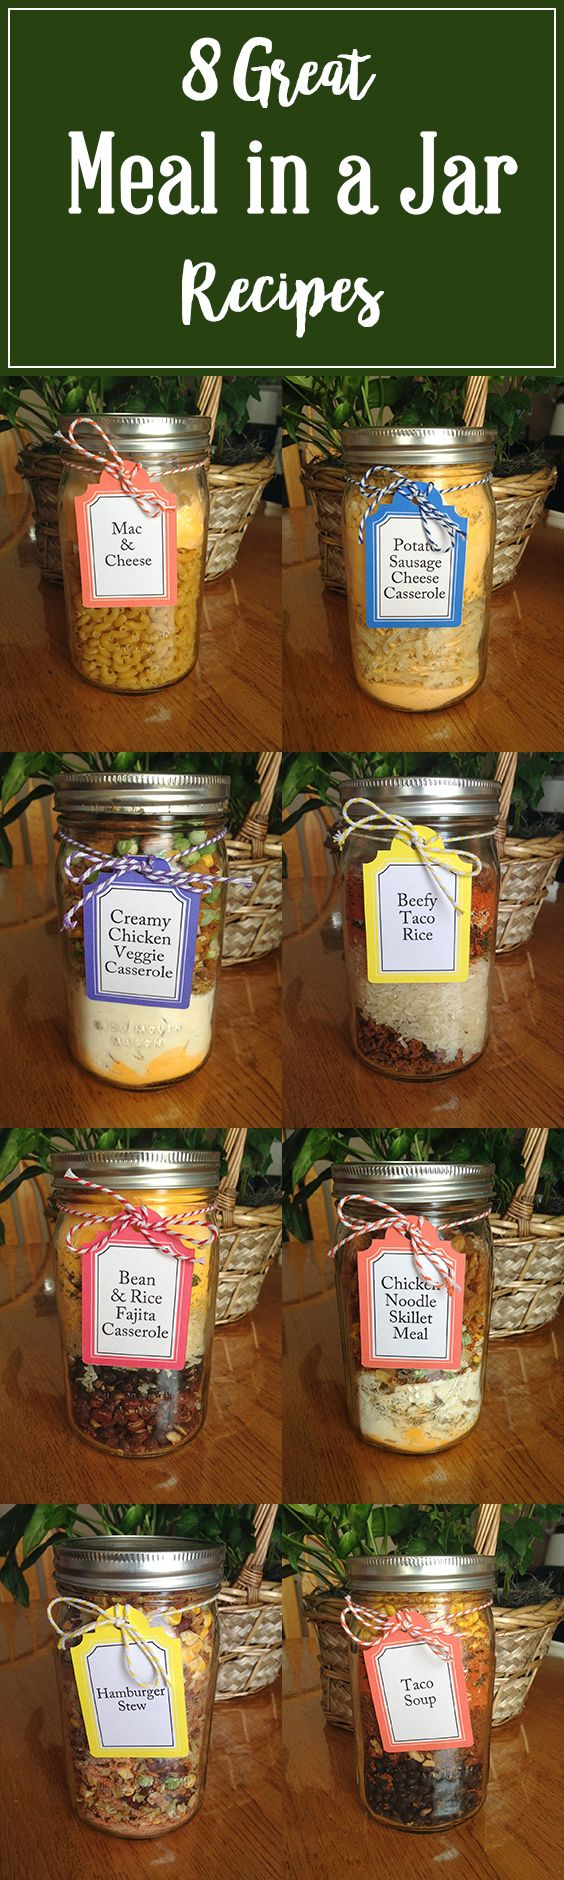 8 Great Meal in a Jar Recipes | These are such a great option for your food storage, emergency preparedness or even just having on hand for a quick dinner option! For best results, I like to use a FoodSaver to vacuum seal my jars, but you can use oxygen absorbers if you prefer. Click on the pin for these and other great recipes! #mealsinajar #foodstorage #jarmeals